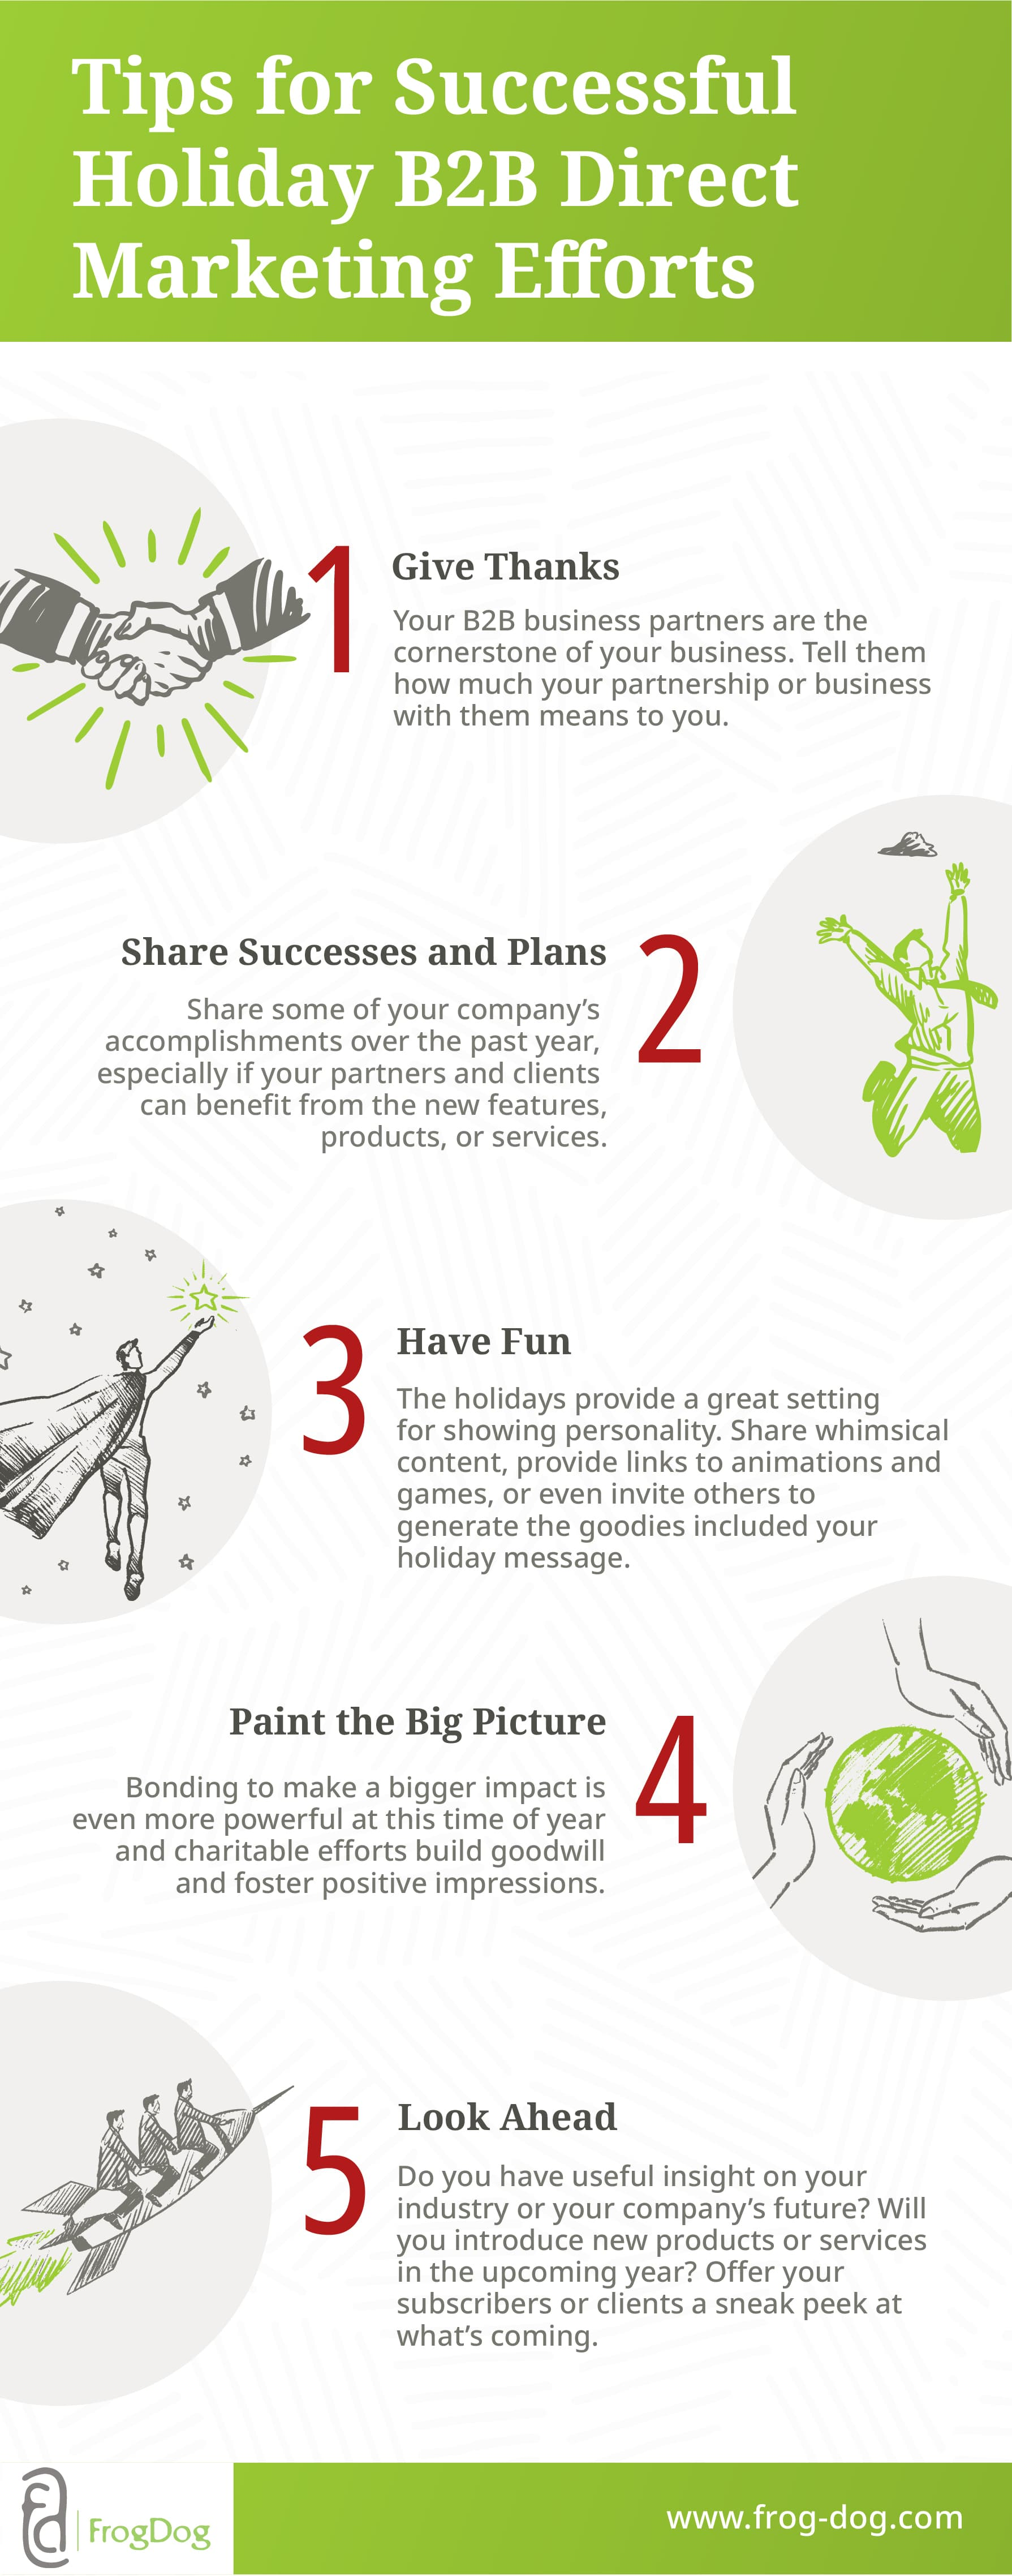 FD Christmas Infographic 5 Marketing Habits 5 Marketing Habits